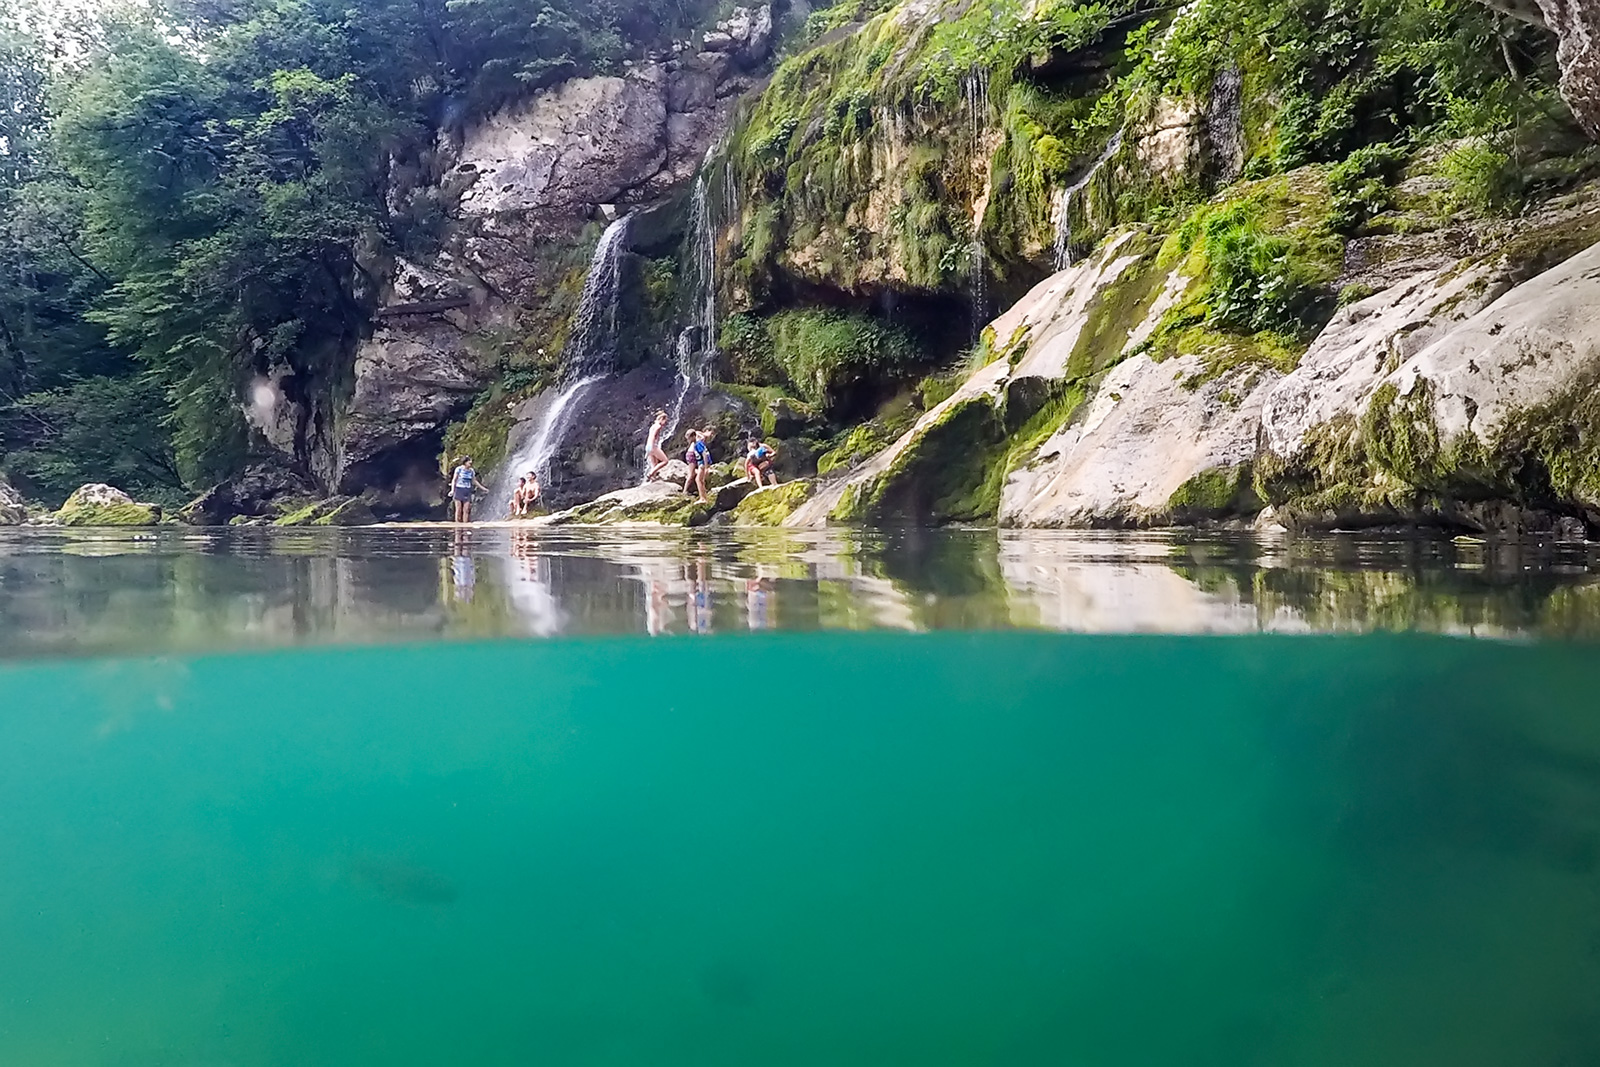 The waters of the pools under Virje waterfall are  quite murky  - a result of numerous swimmers seeking  to chill themselves in the summer heat. But you can still see a trout here and there.